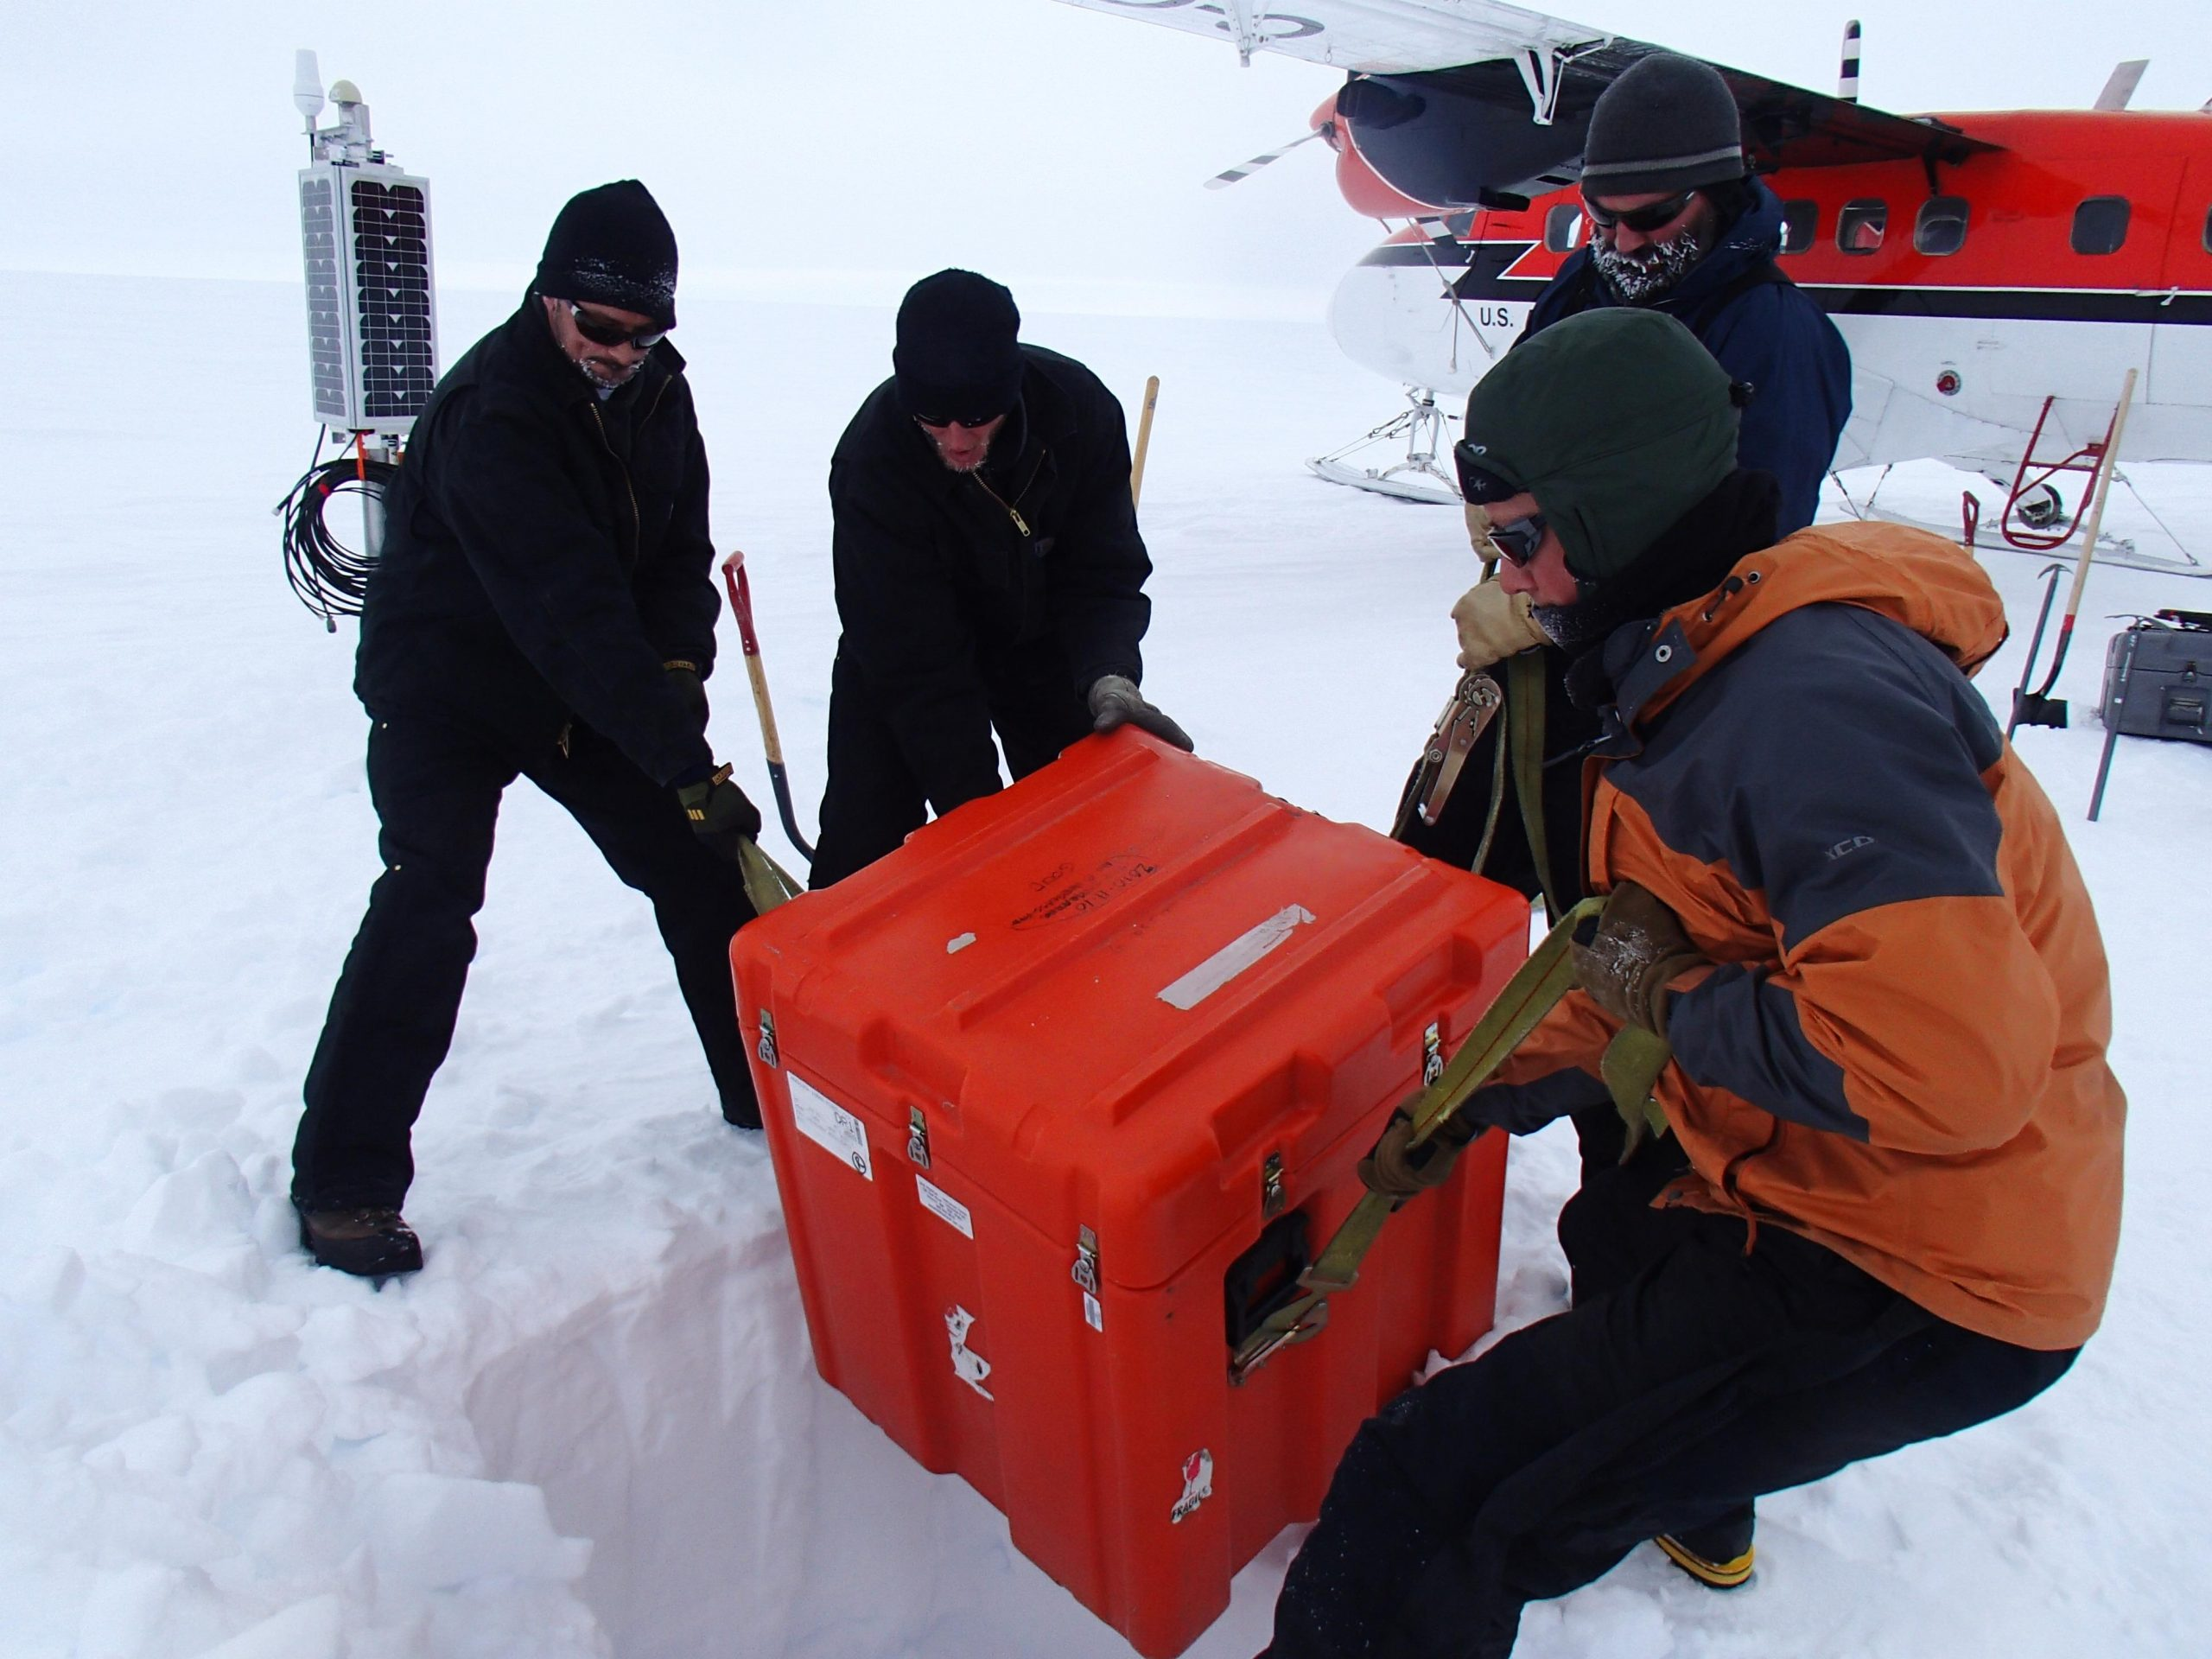 Twitter photo of people in a polar region lowering a box into the ice.